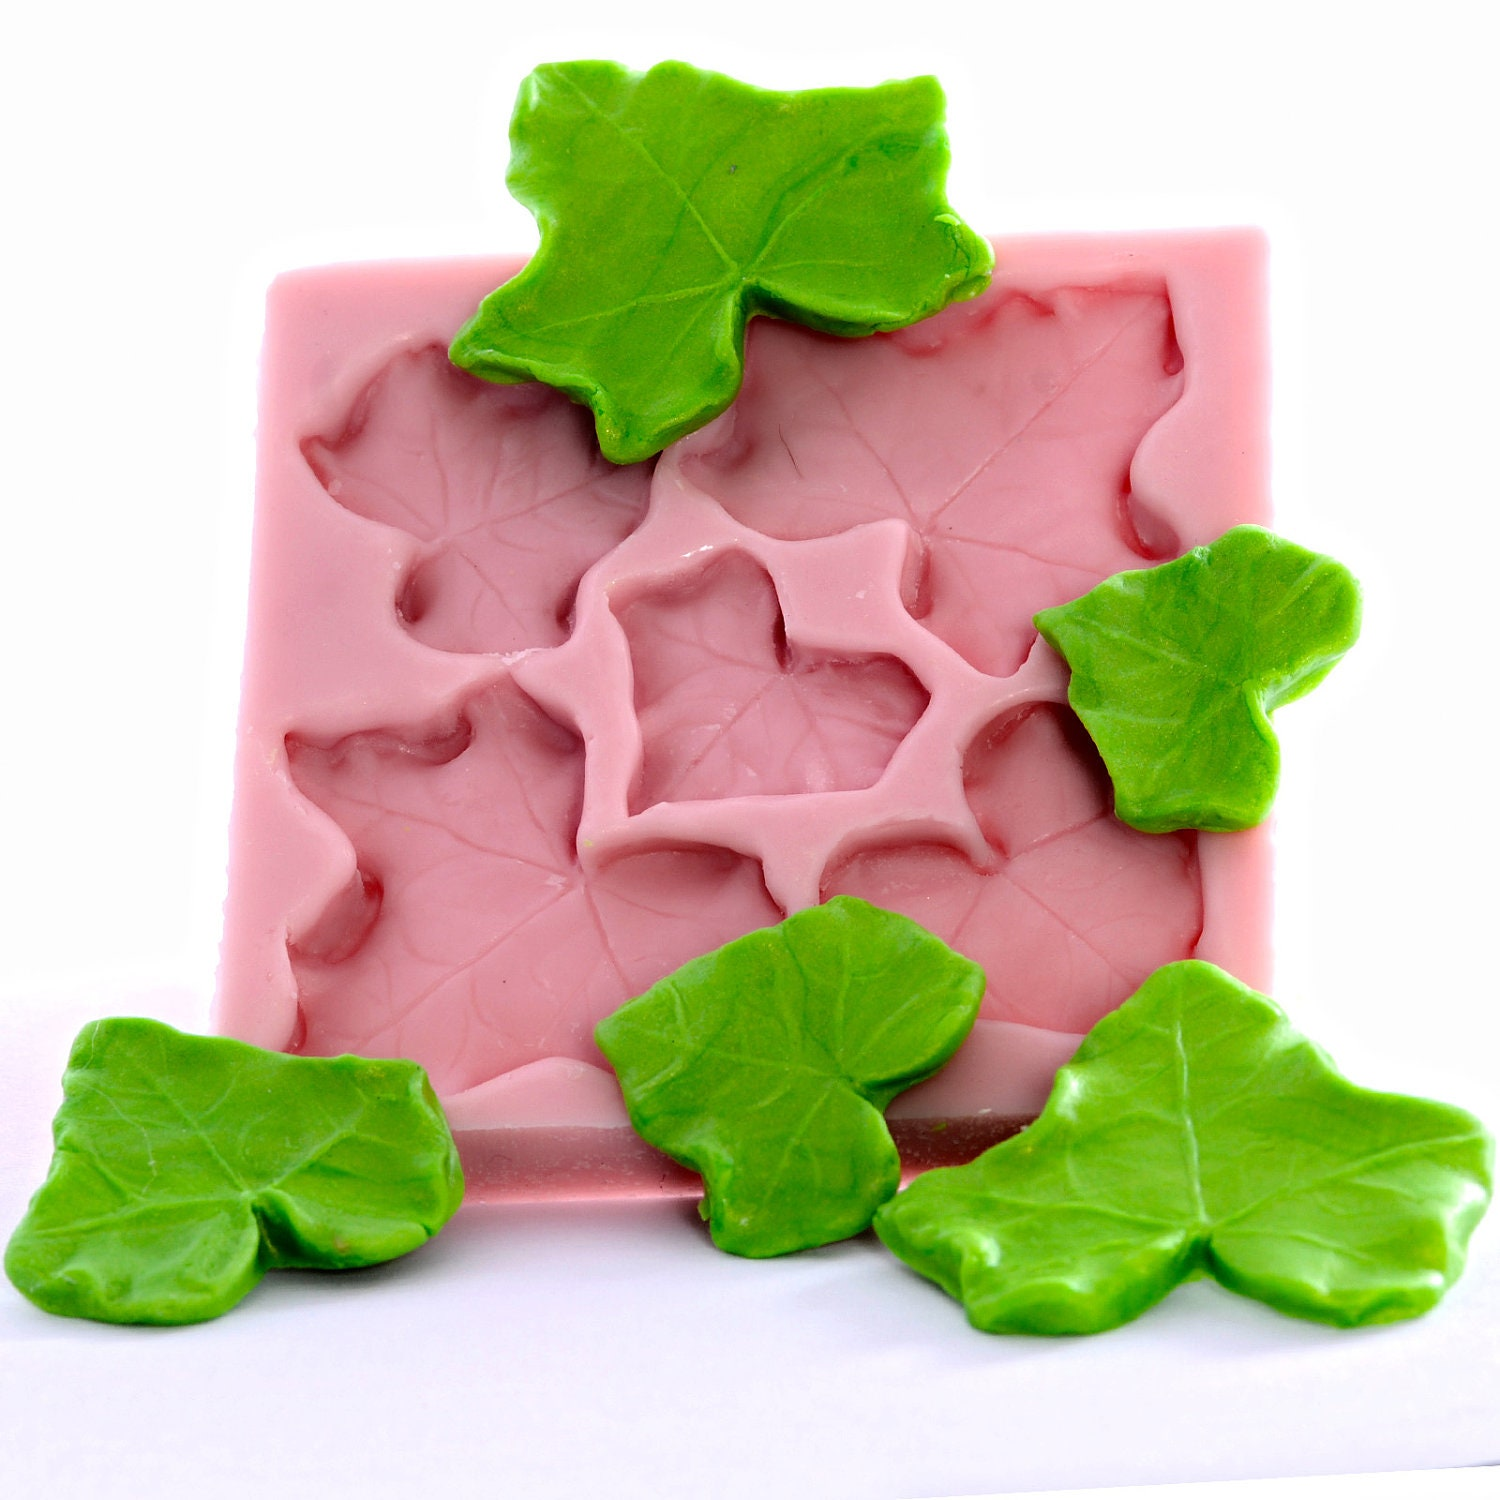 Ivy leaf mold fondant mold gum paste mold by moldmeshapeme - Ivy interior design software reviews ...